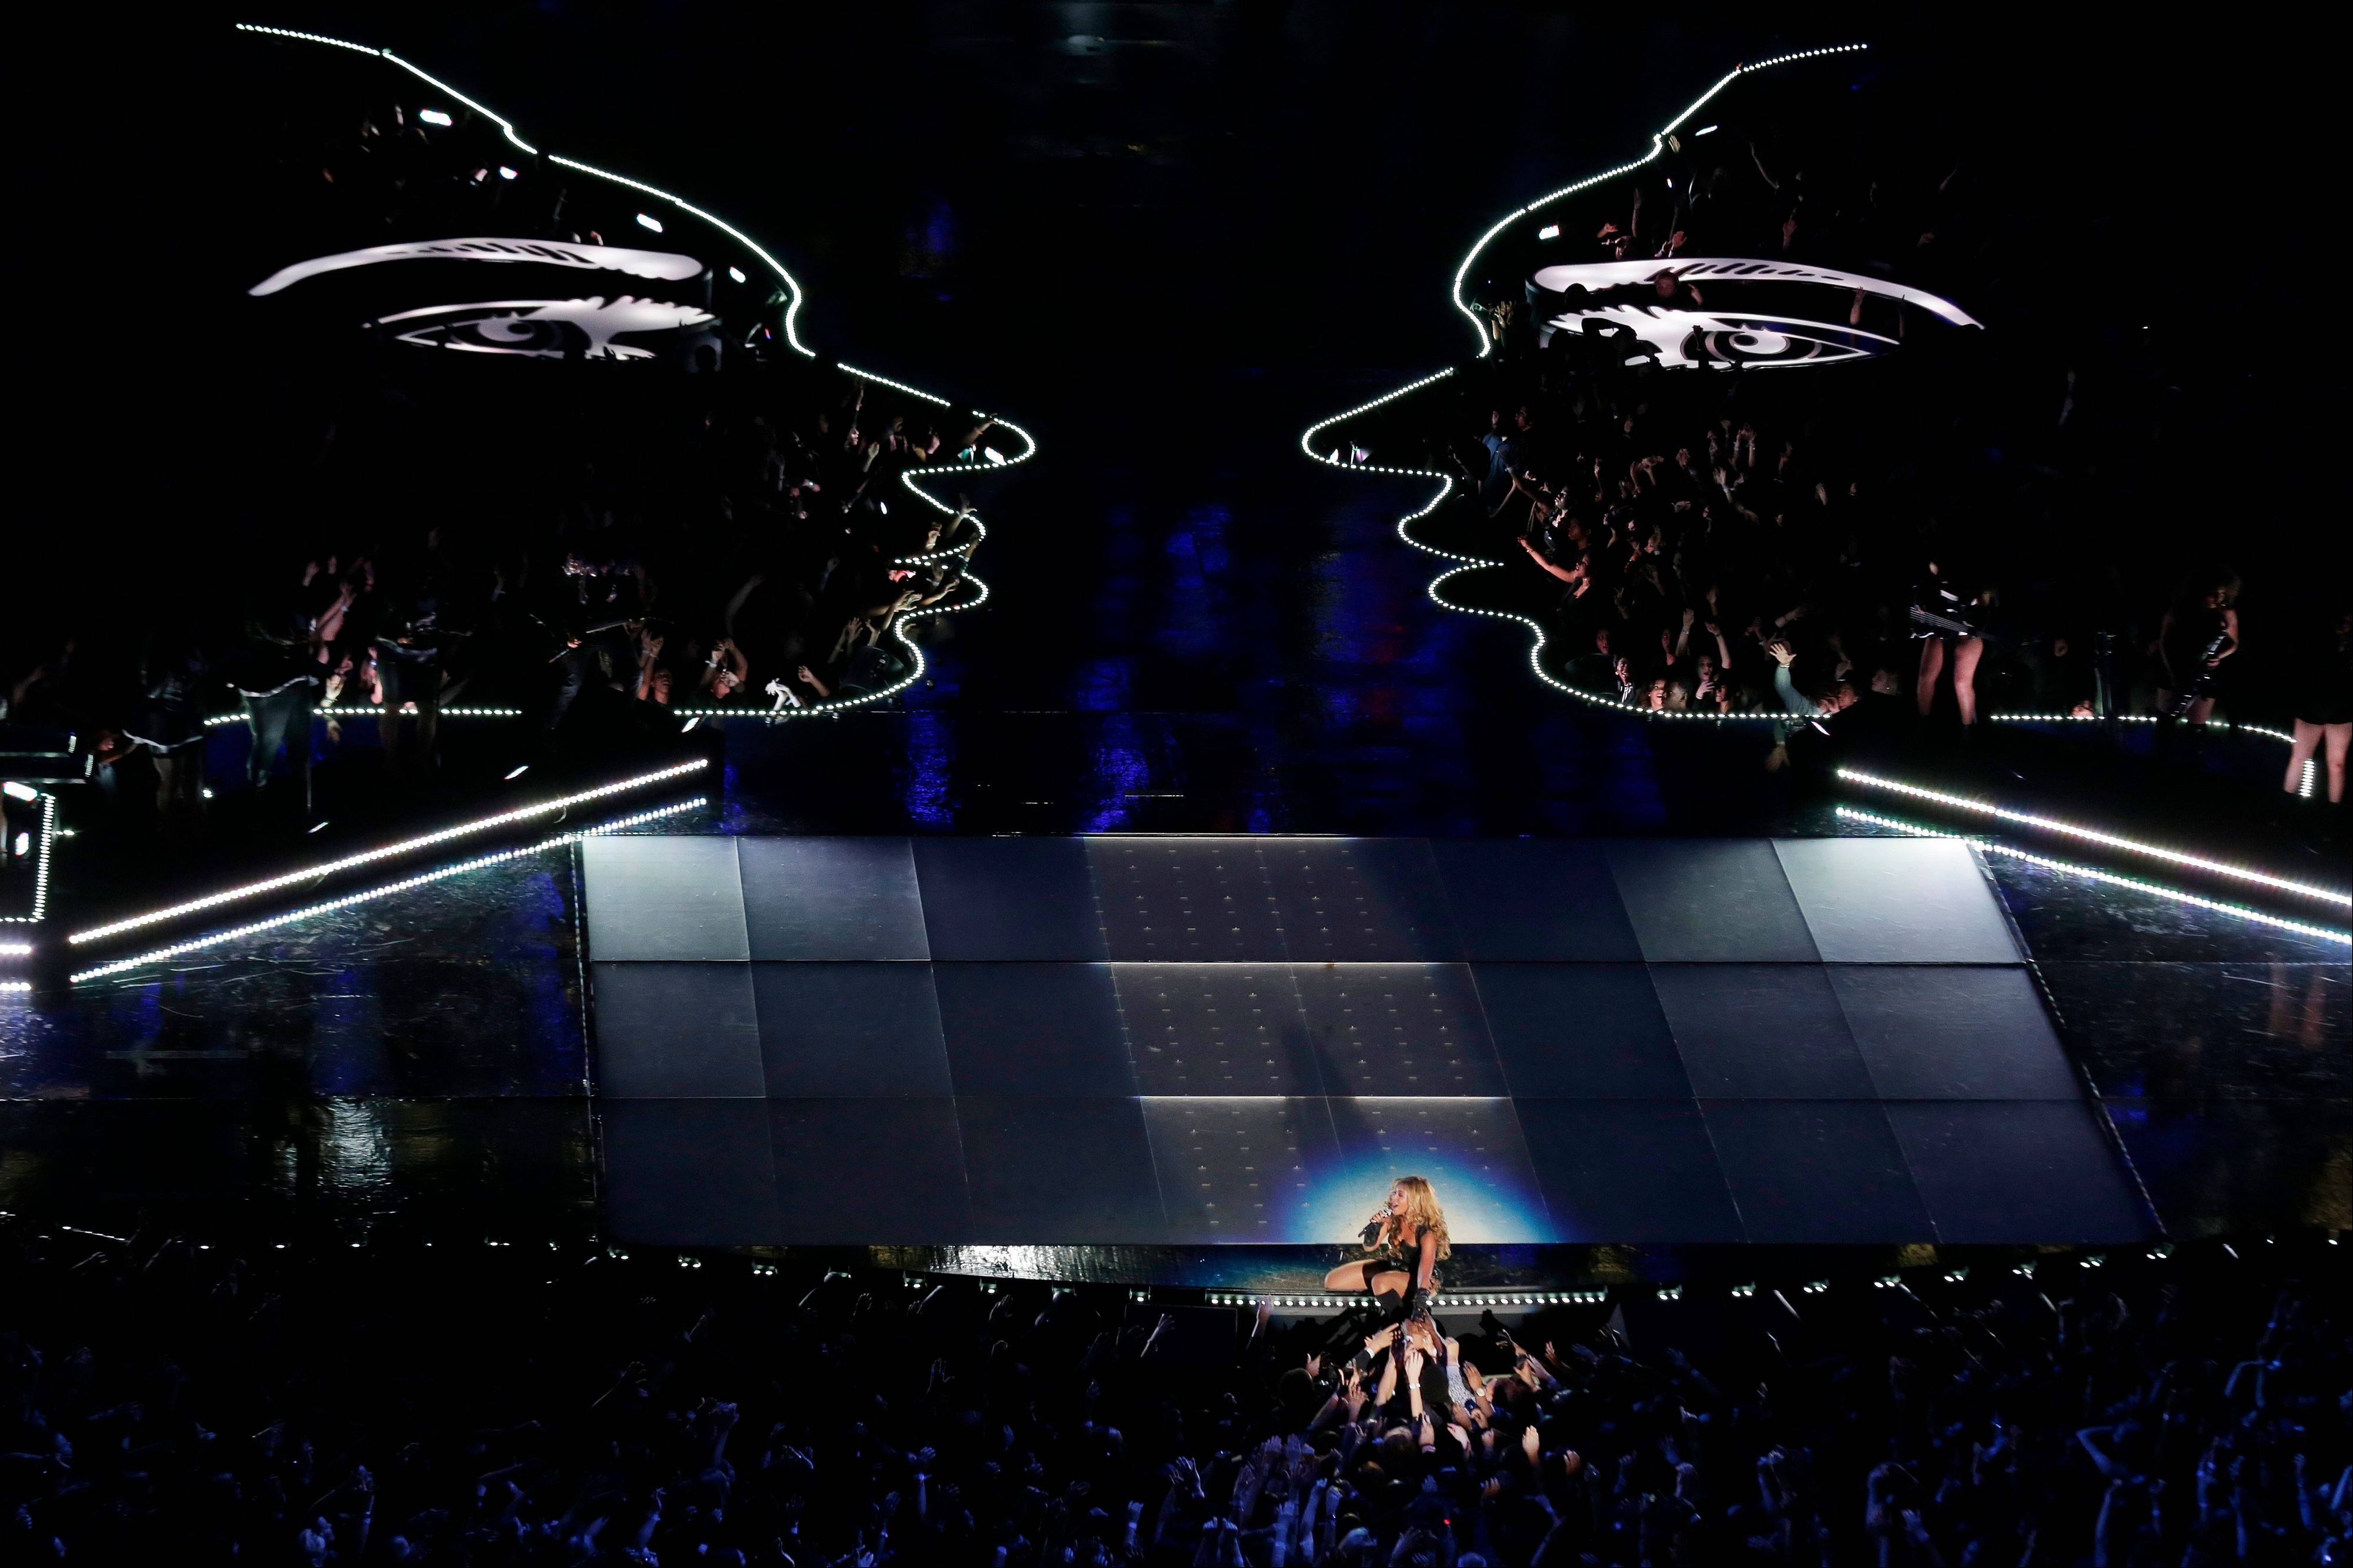 Beyonce's set featured lighted profiles during the Super Bowl halftime show.